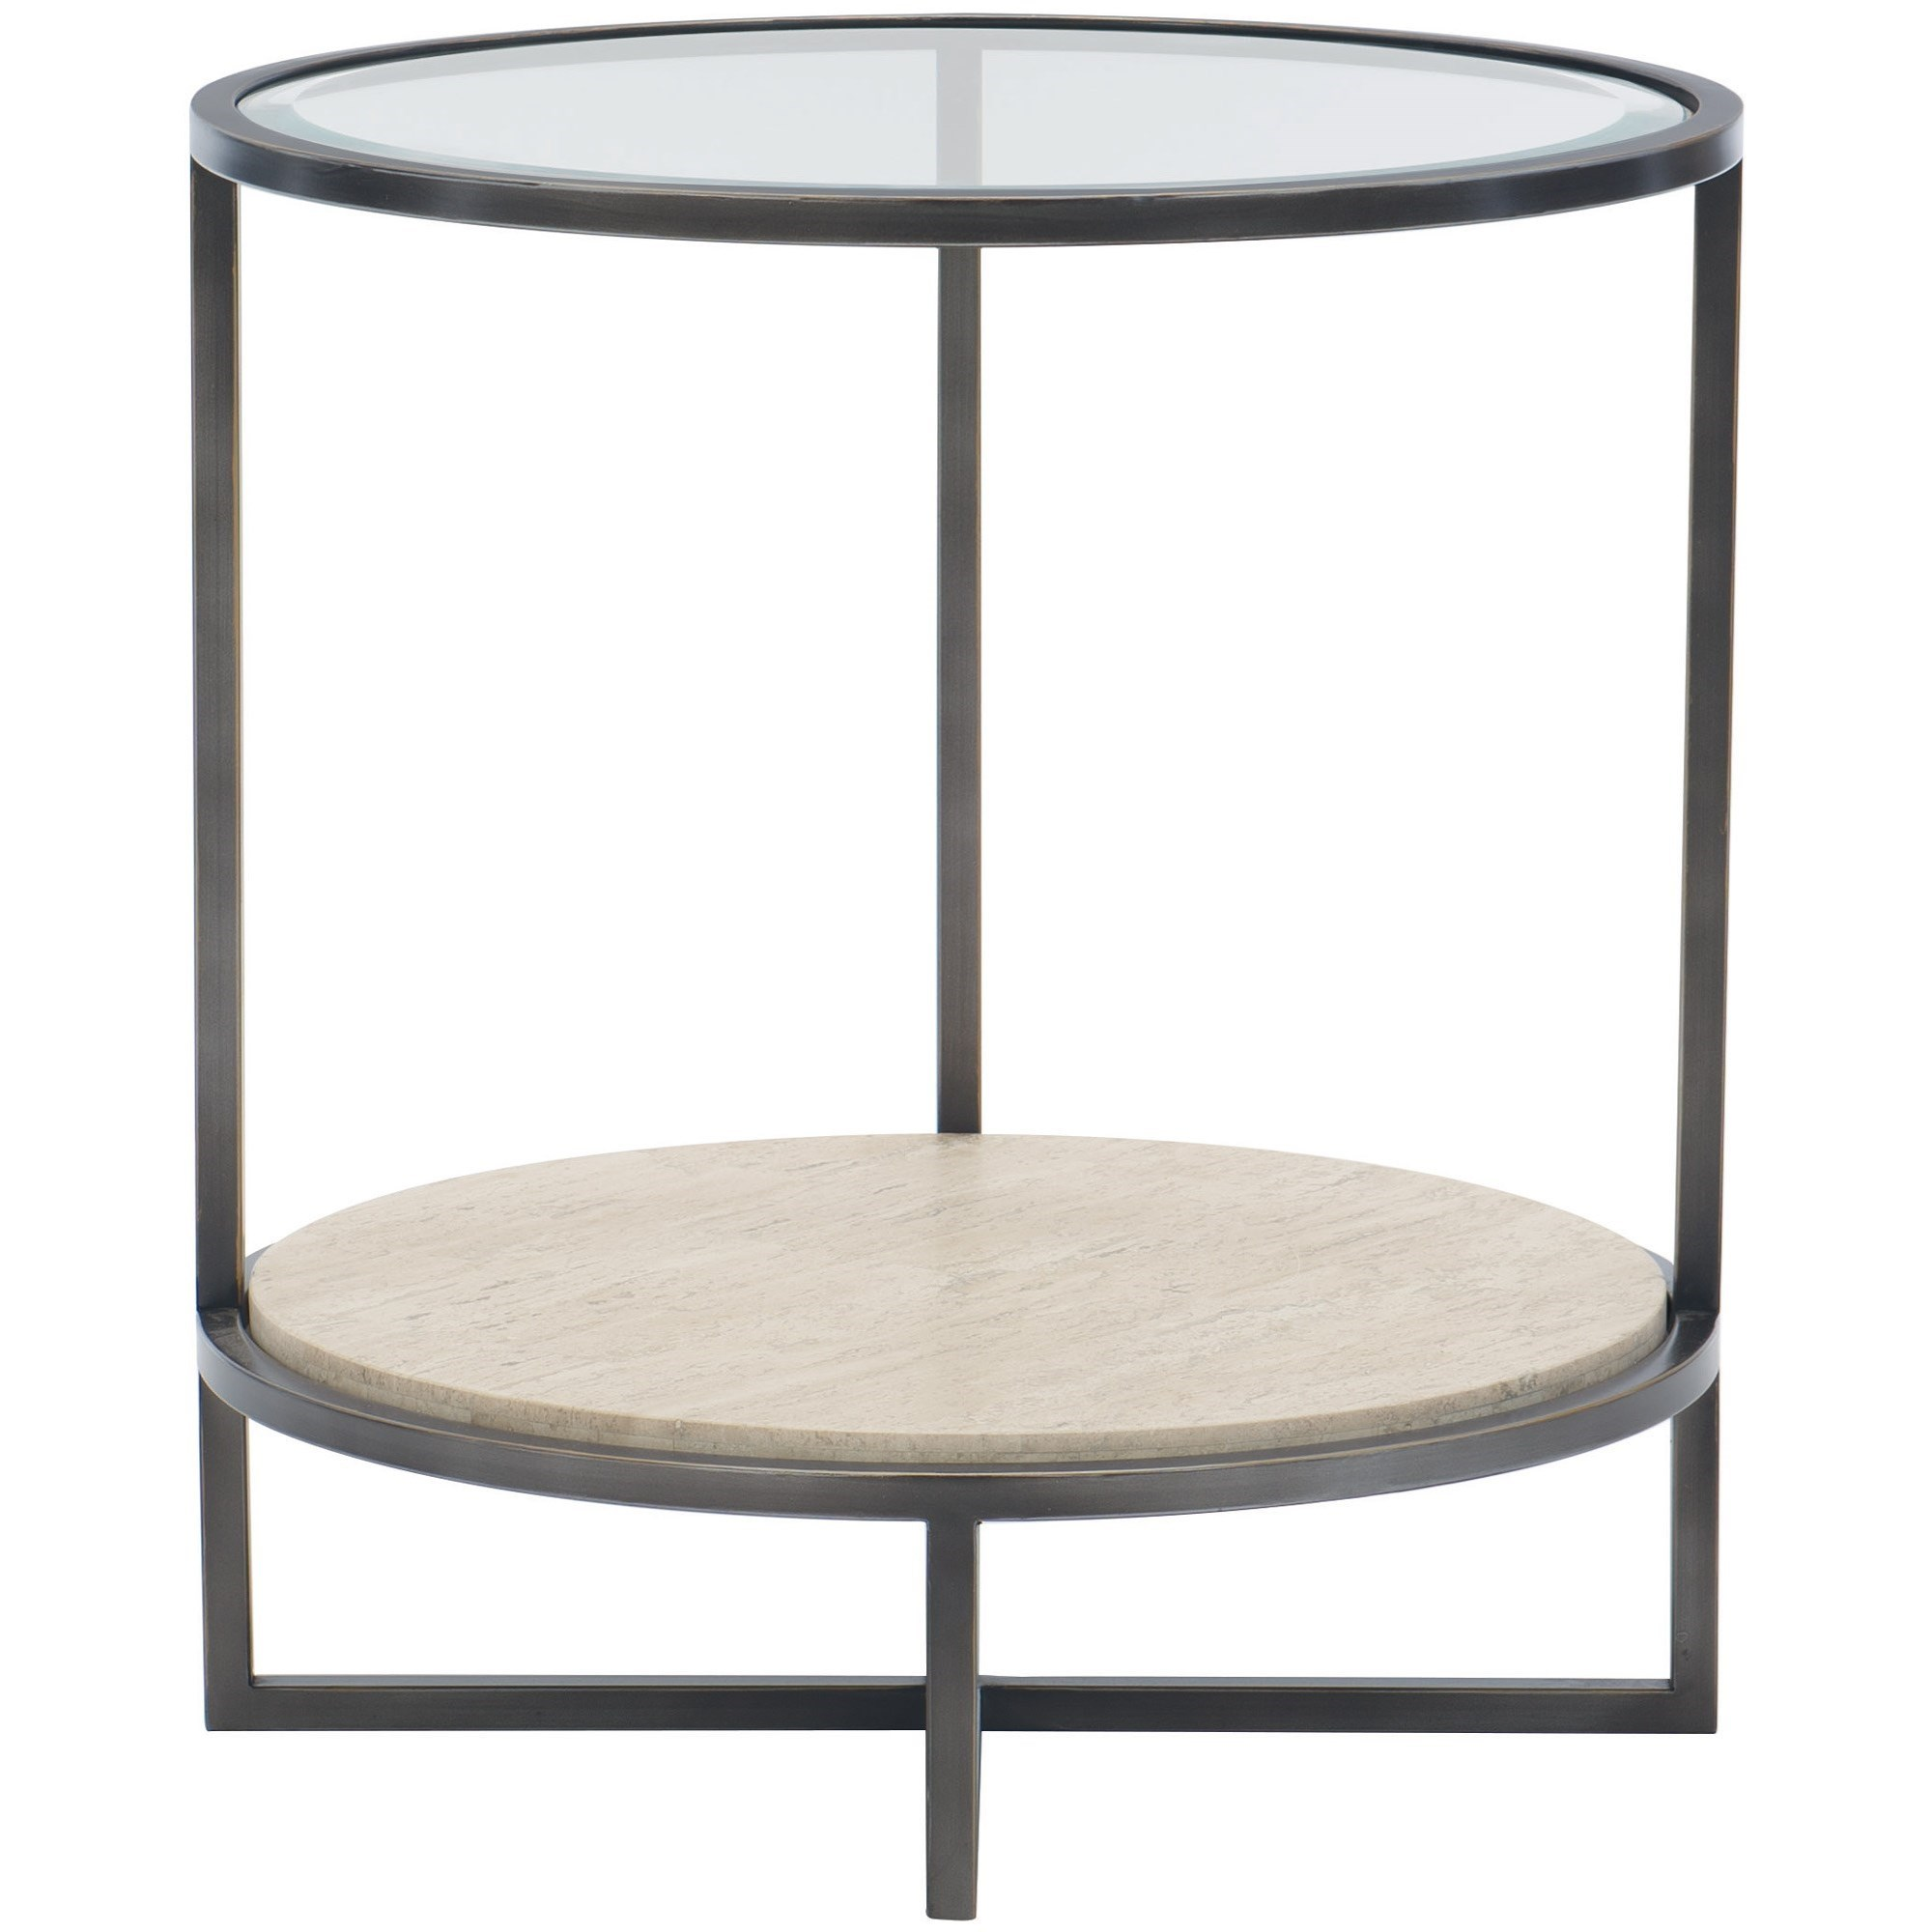 Harlow Metal Round Chairside Table at Williams & Kay